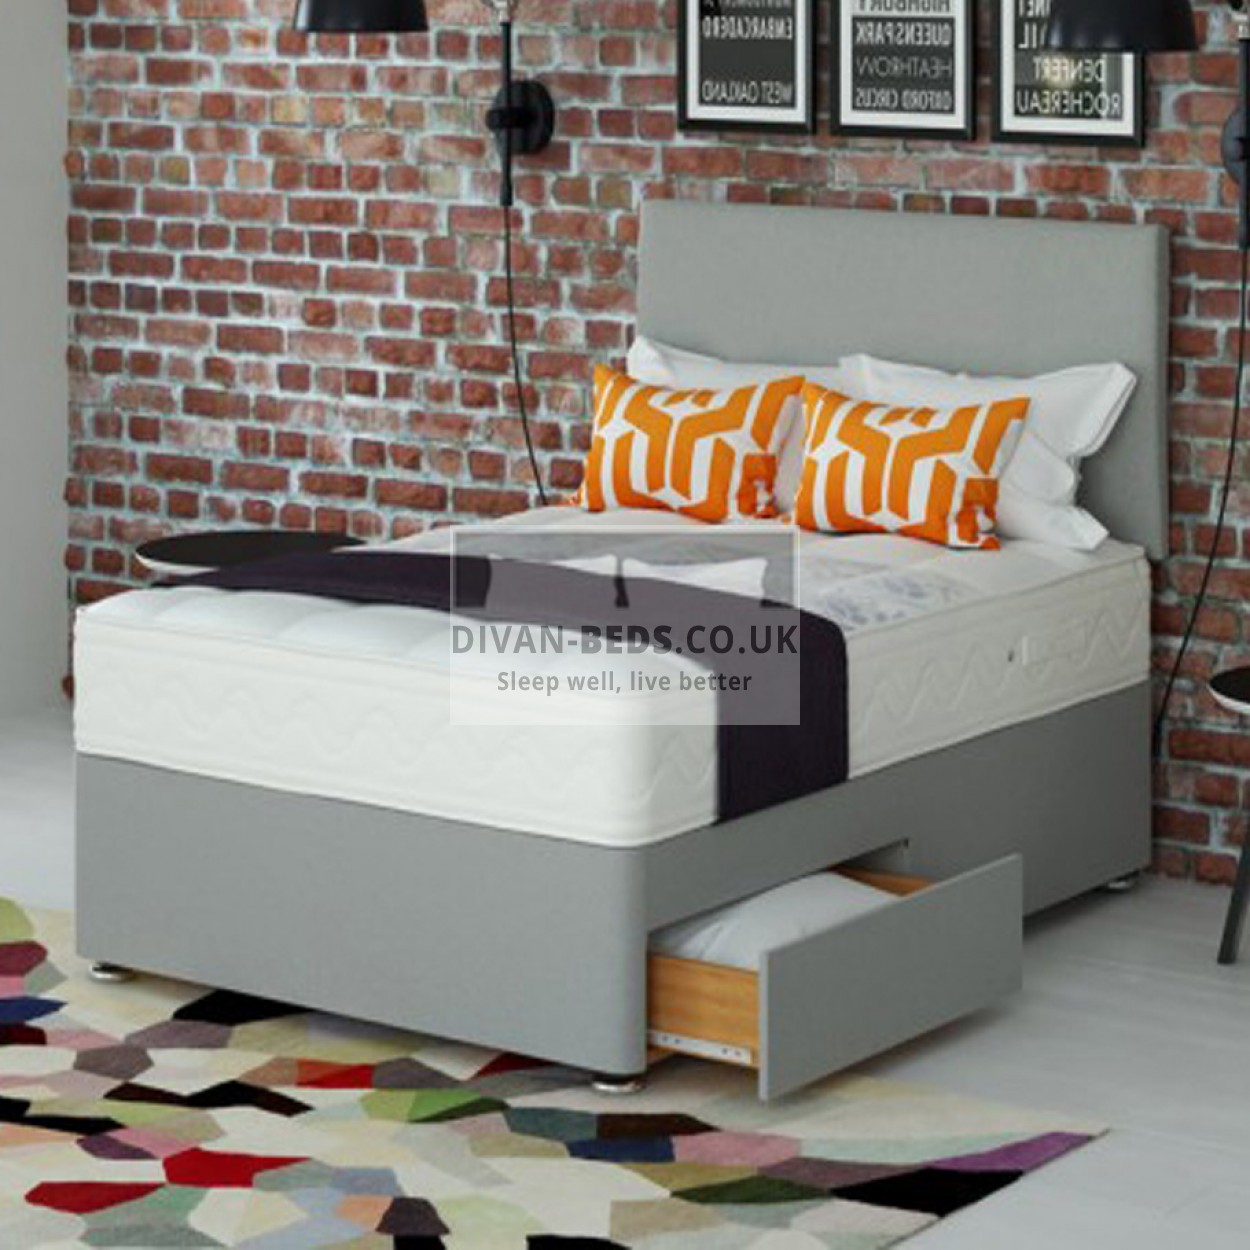 Alfie Divan Bed Set With High Density Open Spring Memory Foam Mattress Guaranteed Cheapest